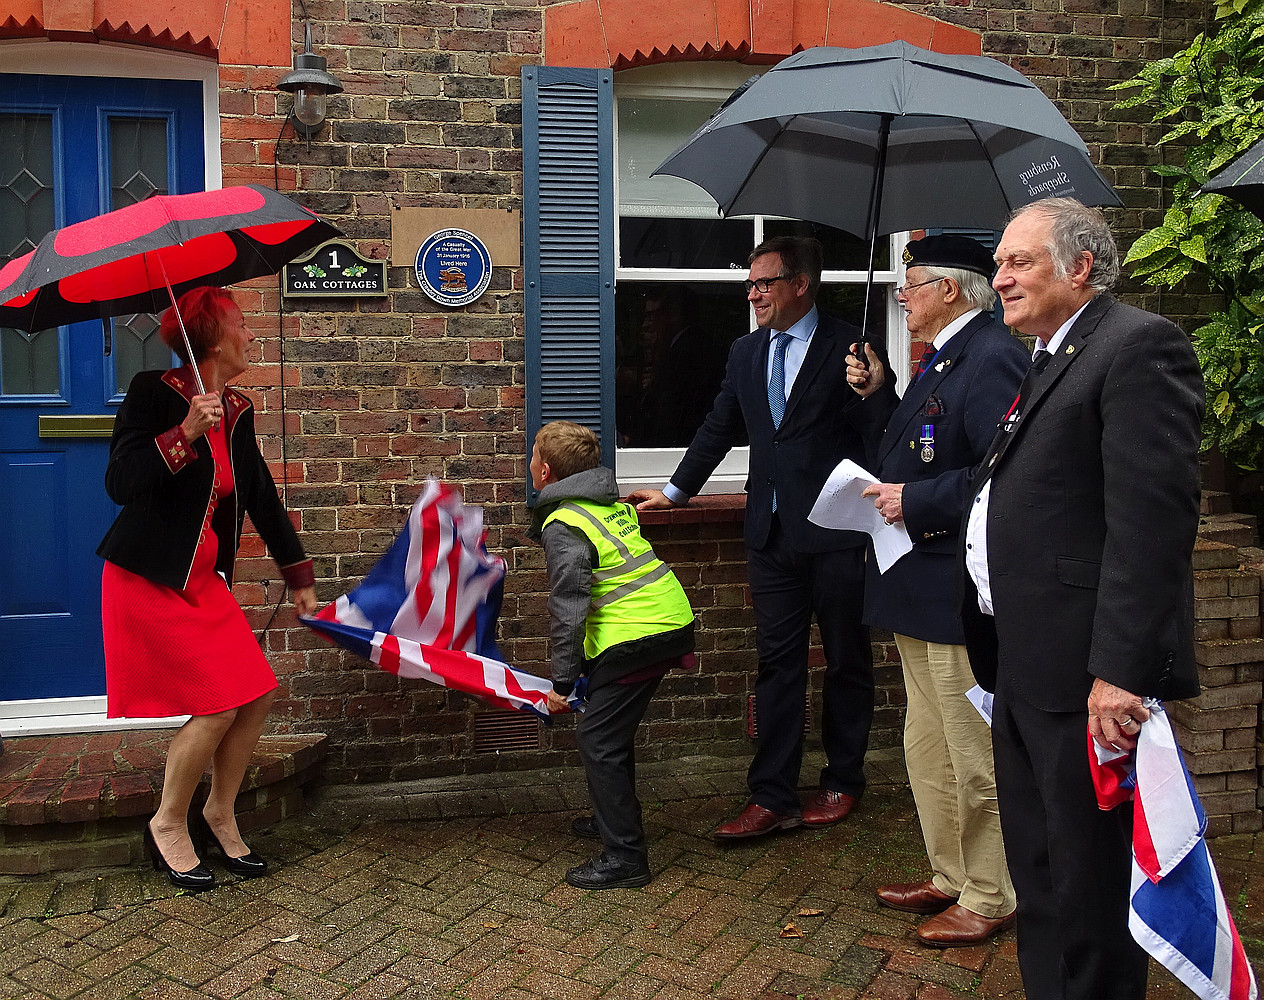 Unveiling plaque at 1 Sandy Lane with assistance from schoolboy.